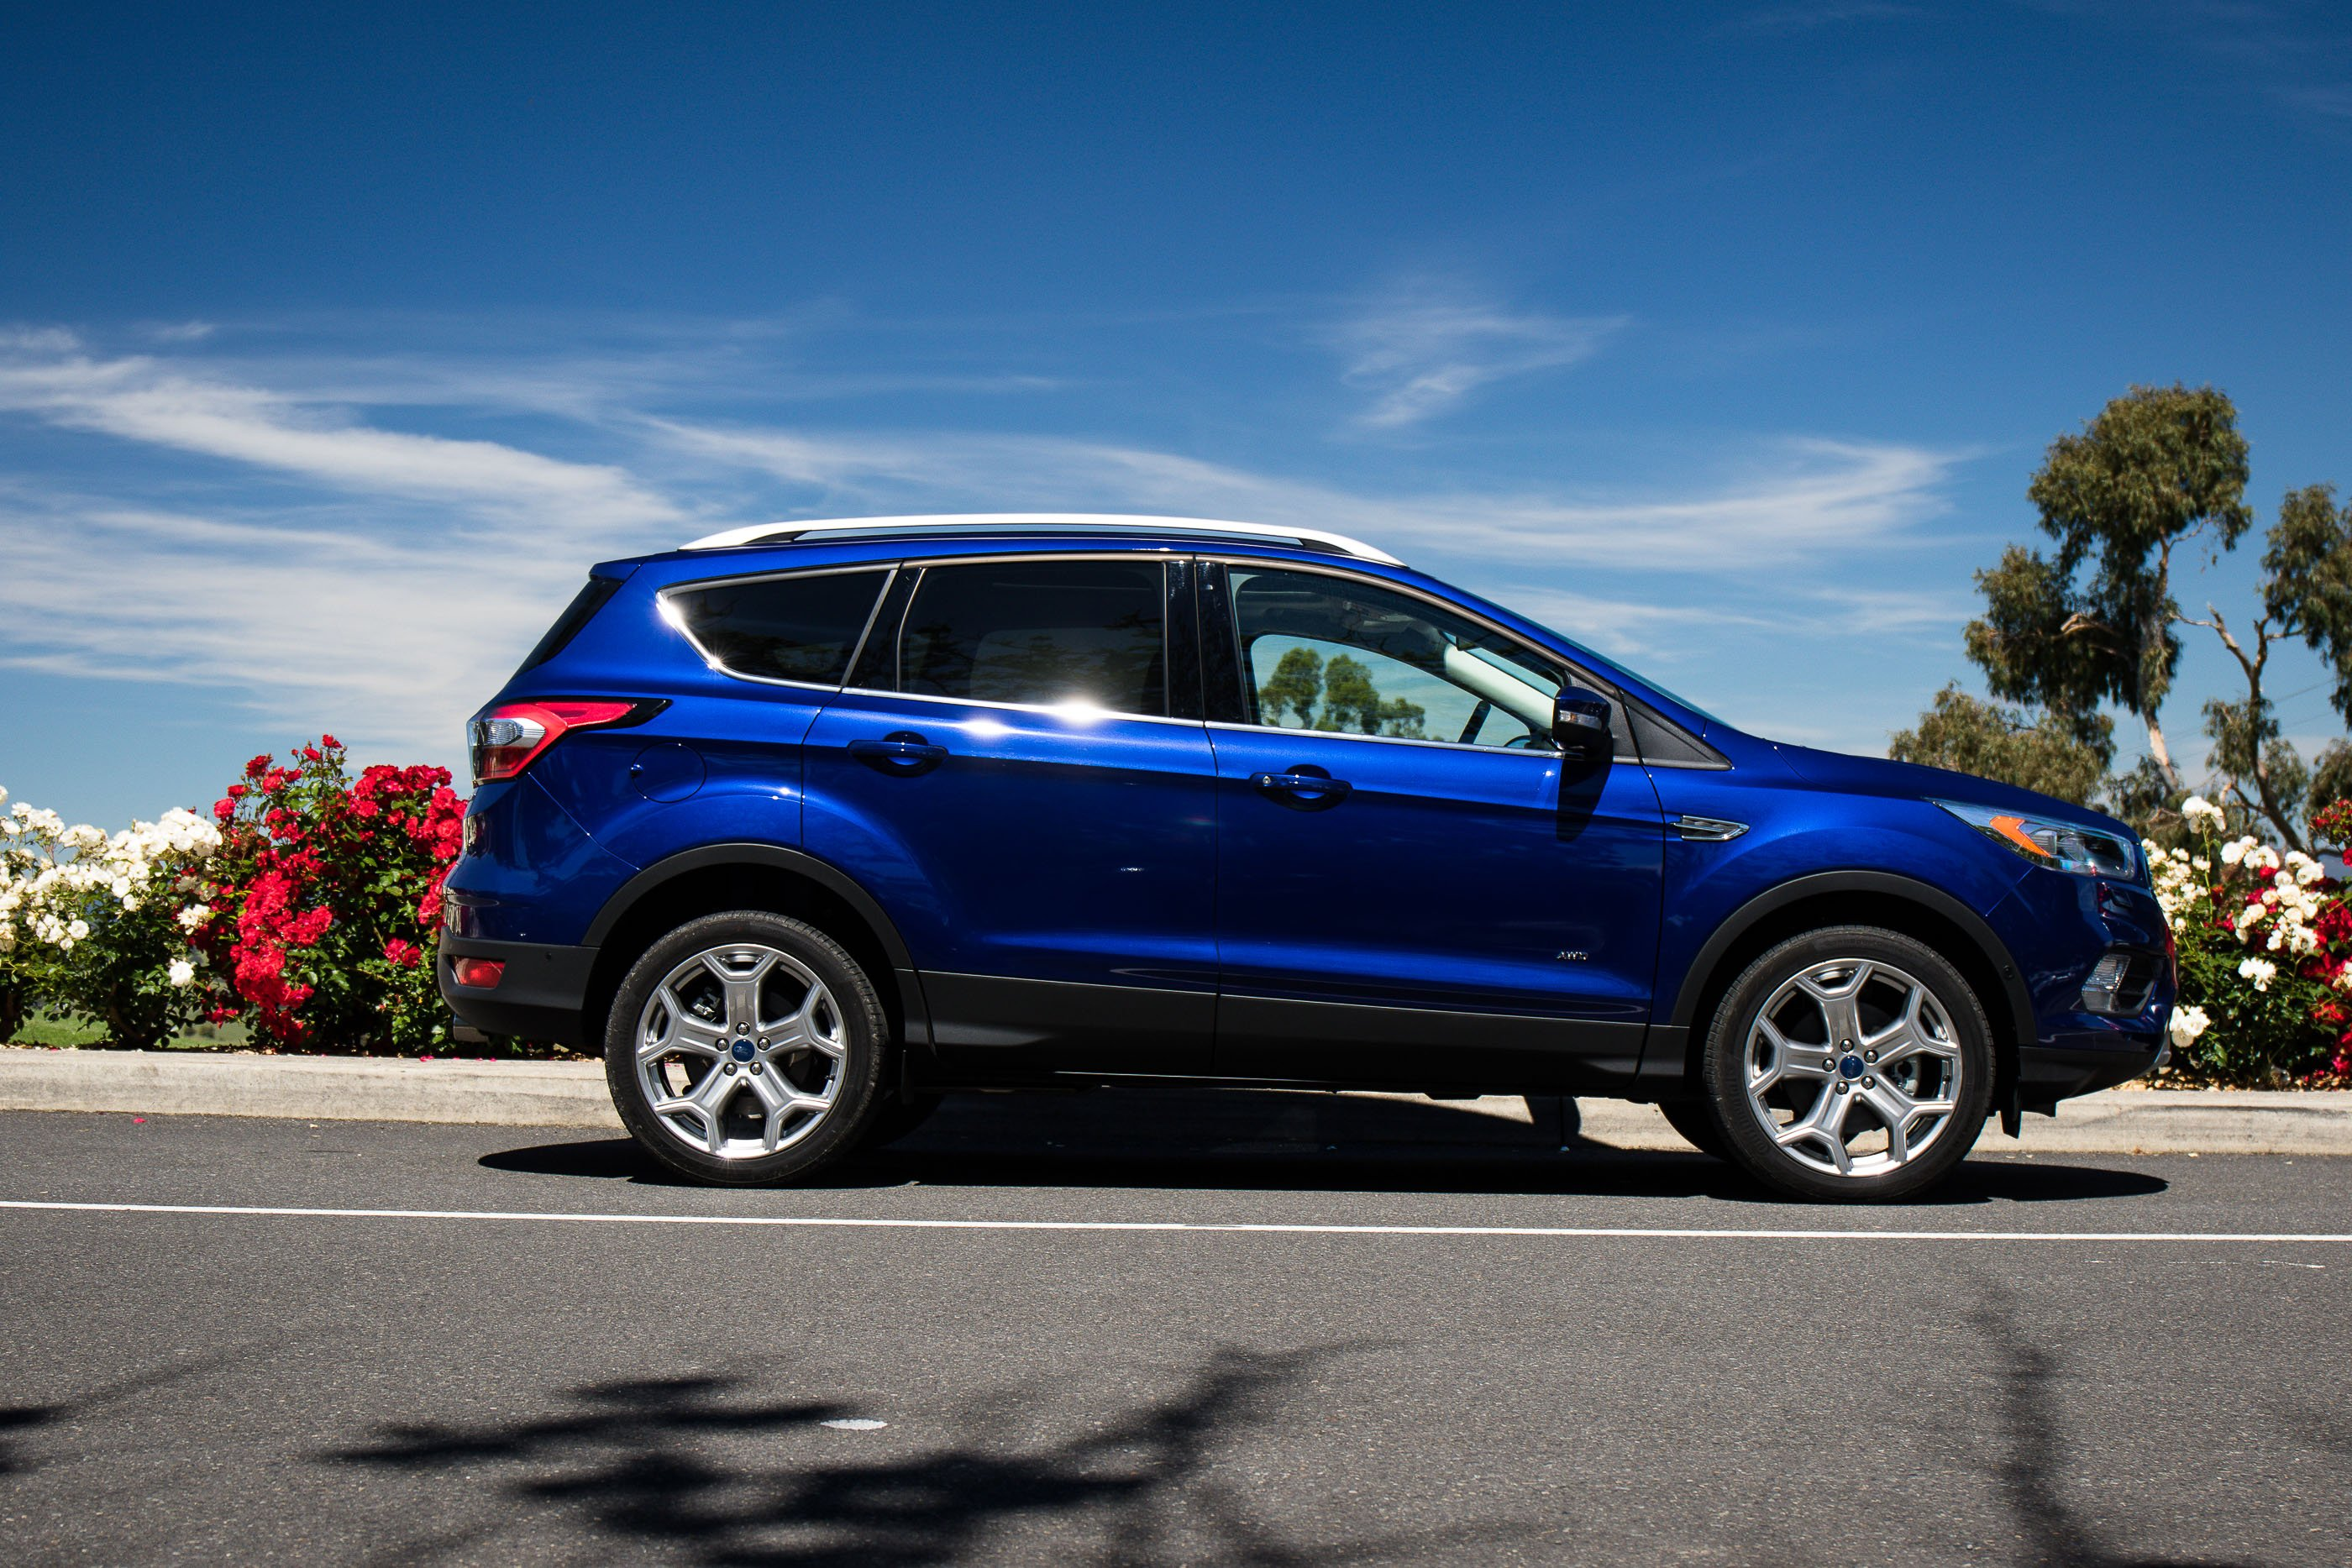 2017 Ford Escape review: Quick drive - photos | CarAdvice